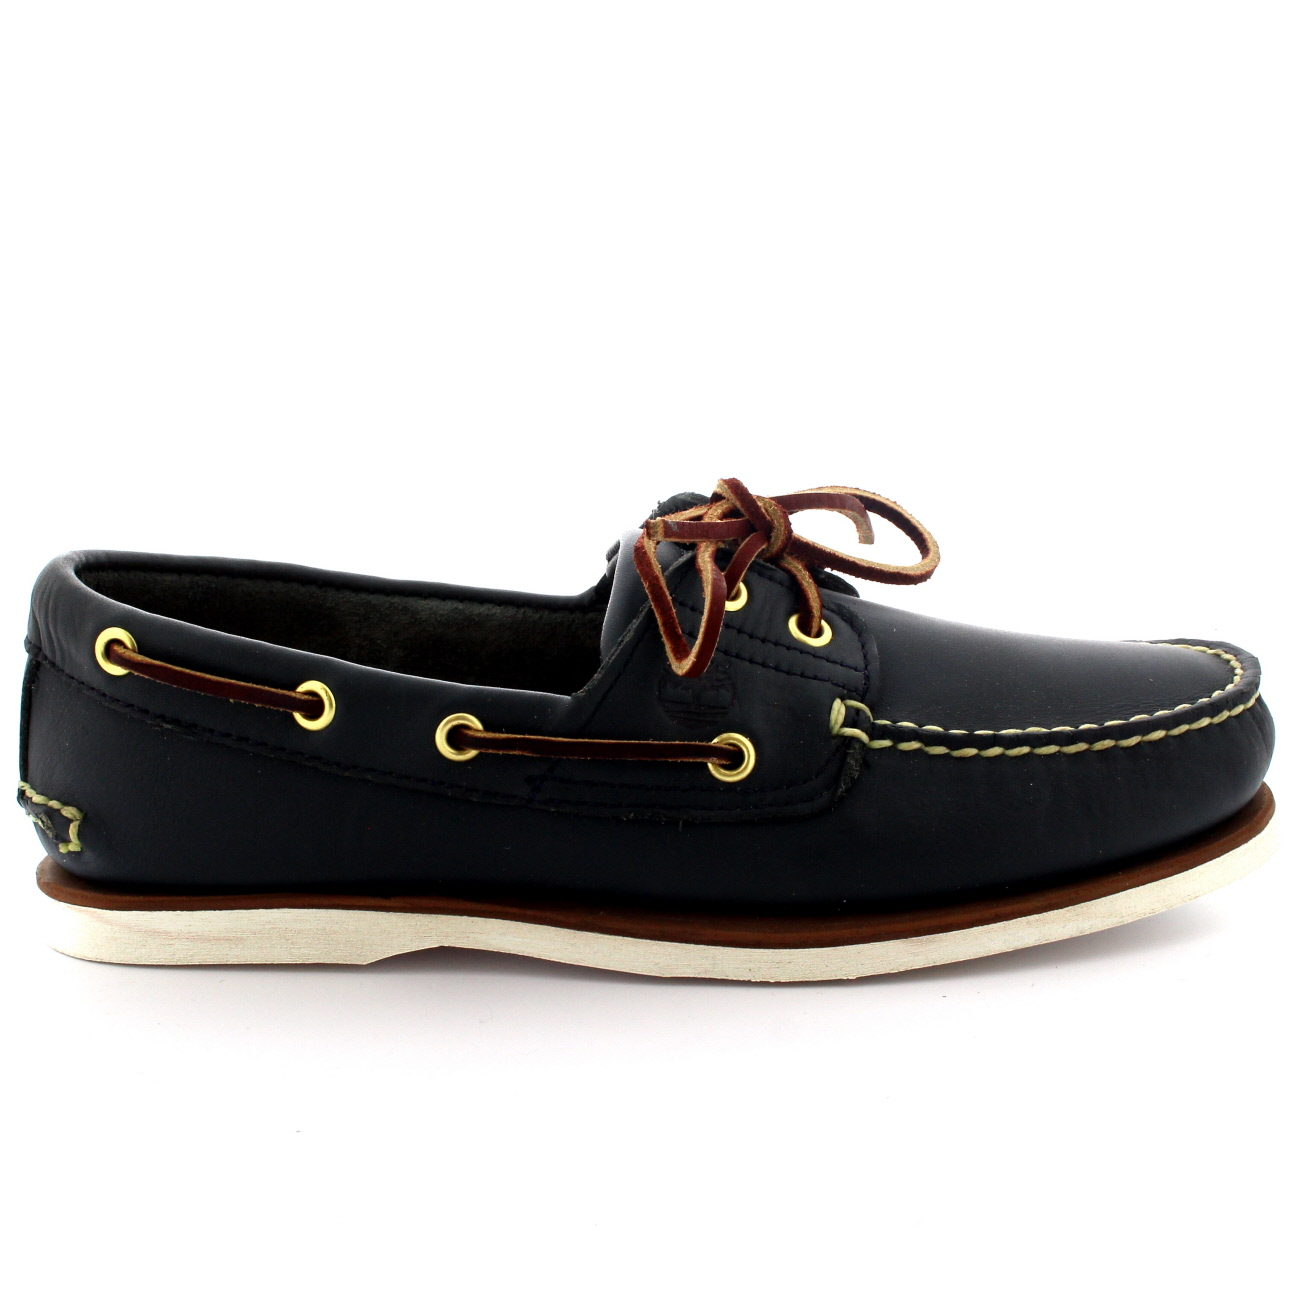 Mens-Timberland-Classic-2-Eye-Boat-Lace-Up-Smart-Leather-Deck-Boat-Shoes-UK-7-13